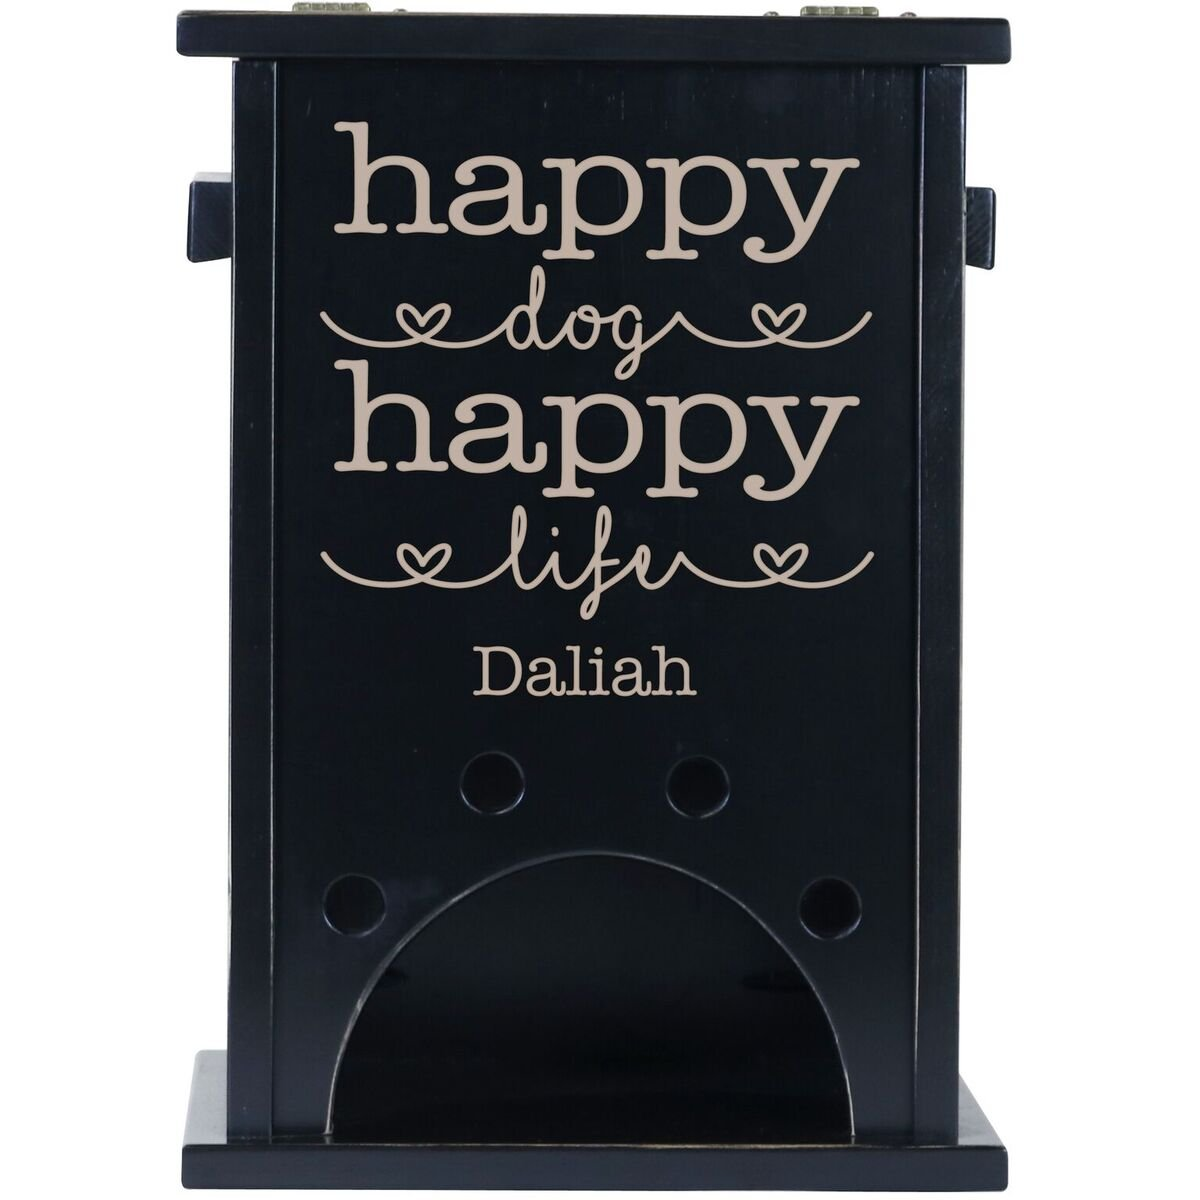 Personalized Custom Engraved Pine Pet Toy Box Storage Organizer, Birthday gift for Dogs, Daughter, Sons, Boys and Girls, Grandchildren, Made in USA By Rooms Organized (Black)